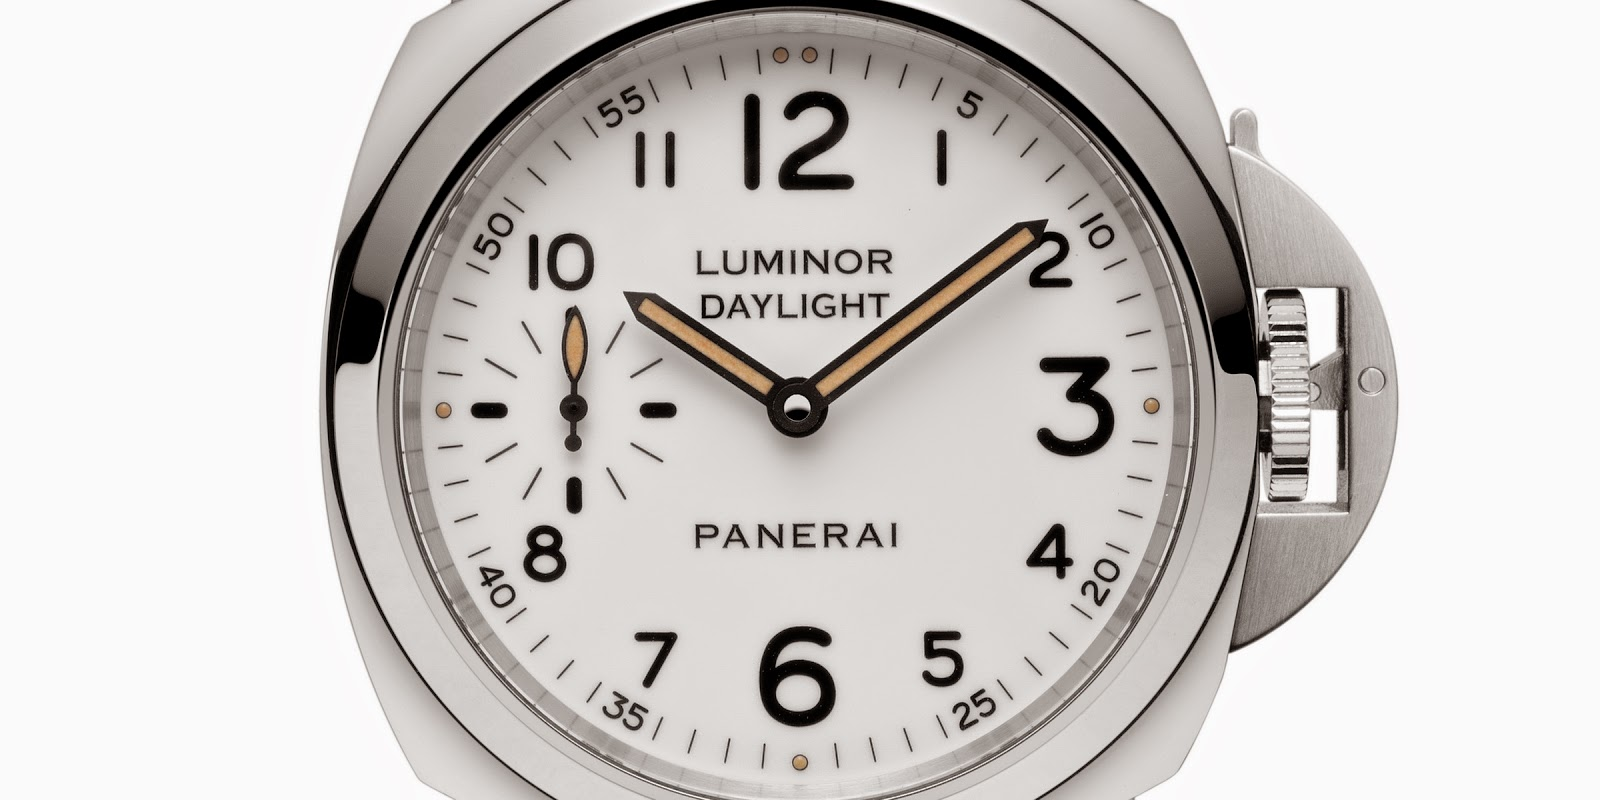 9a319841bcad The case shared by the two Luminors has a diameter of 44mm. Its shape and  proportions were created by Officine Panerai in 1993 as a reinterpretation  of the ...